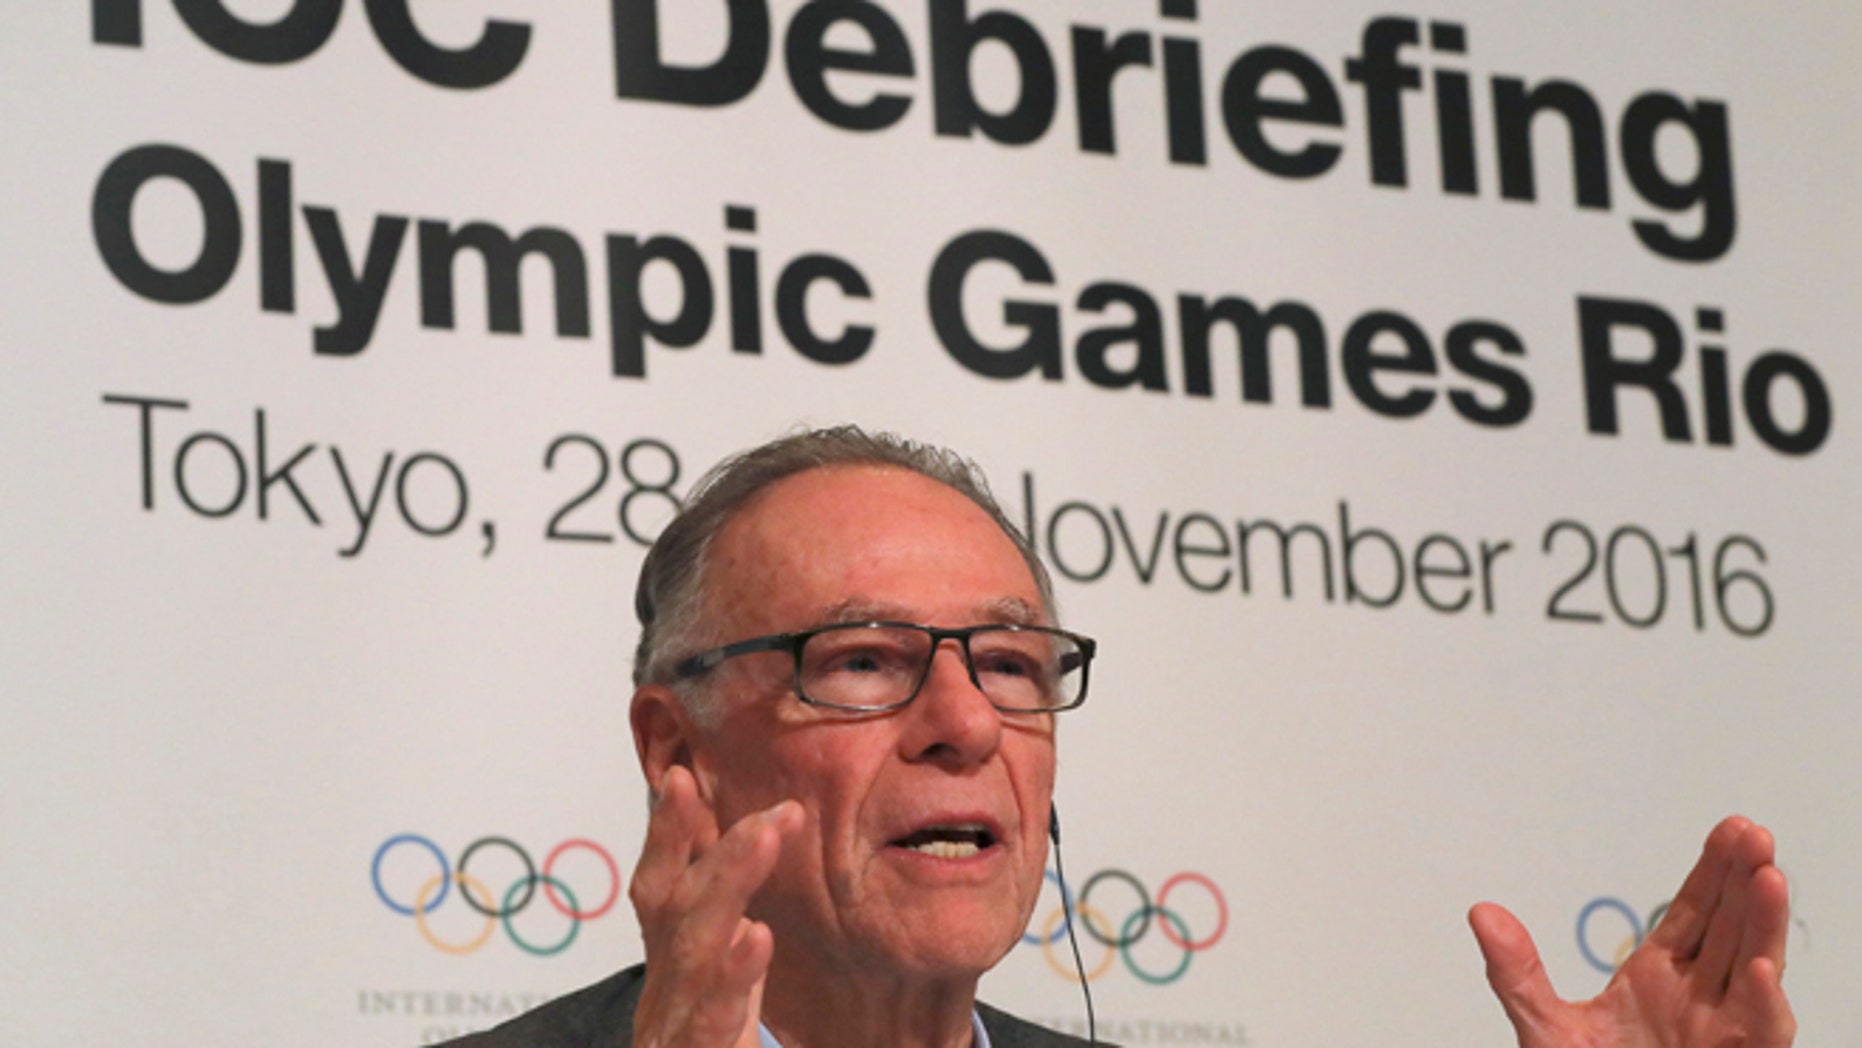 Carlos Nuzman, president of the Rio 2016 Organizing Committee, delivers speech during a press conference of the closing plenary session of the IOC Debriefing of the Olympic Games Rio 2016, in Tokyo, Wednesday, Nov. 30, 2016. The three-day IOC debriefing ends Wednesday to share knowledge and experiences between the Rio Olympic Games organizers and future host cities, including Tokyo which will host the 2020 Olympics and Paralympics. (AP Photo/Eugene Hoshiko)